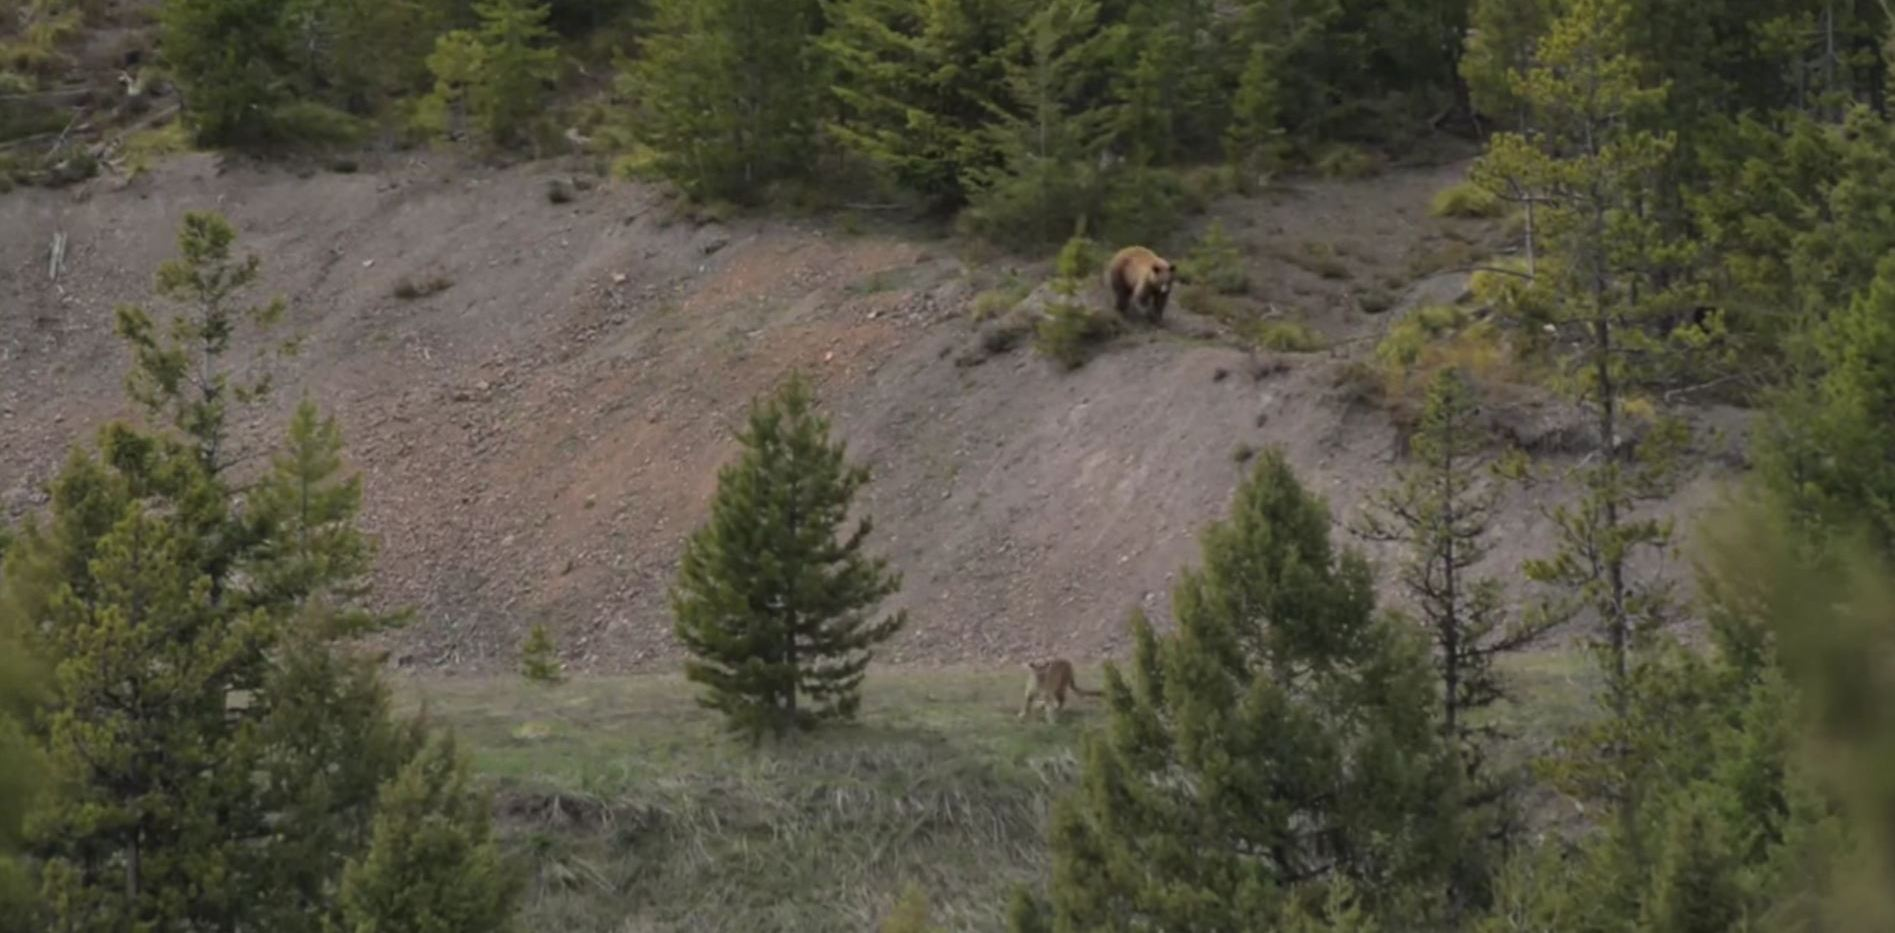 Watch:  Awesome Footage of a Mountain Lion and Bear Encounter